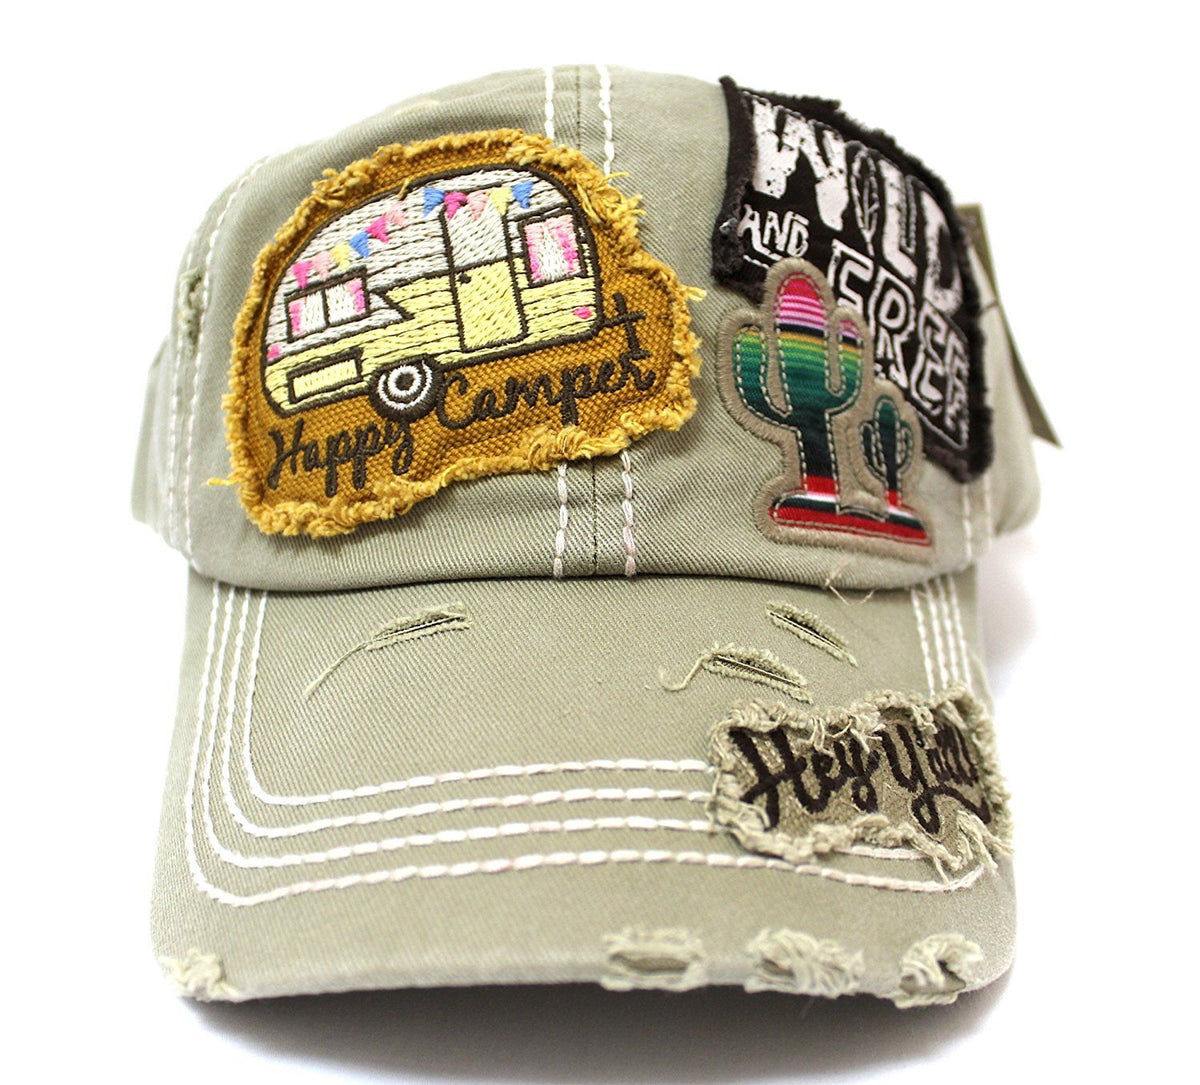 "Khaki ""Y'ALL, HAPPY CAMPER, WILD FREE"" Multi-Patch Embroidered Adjustable Cap - Caps 'N Vintage"